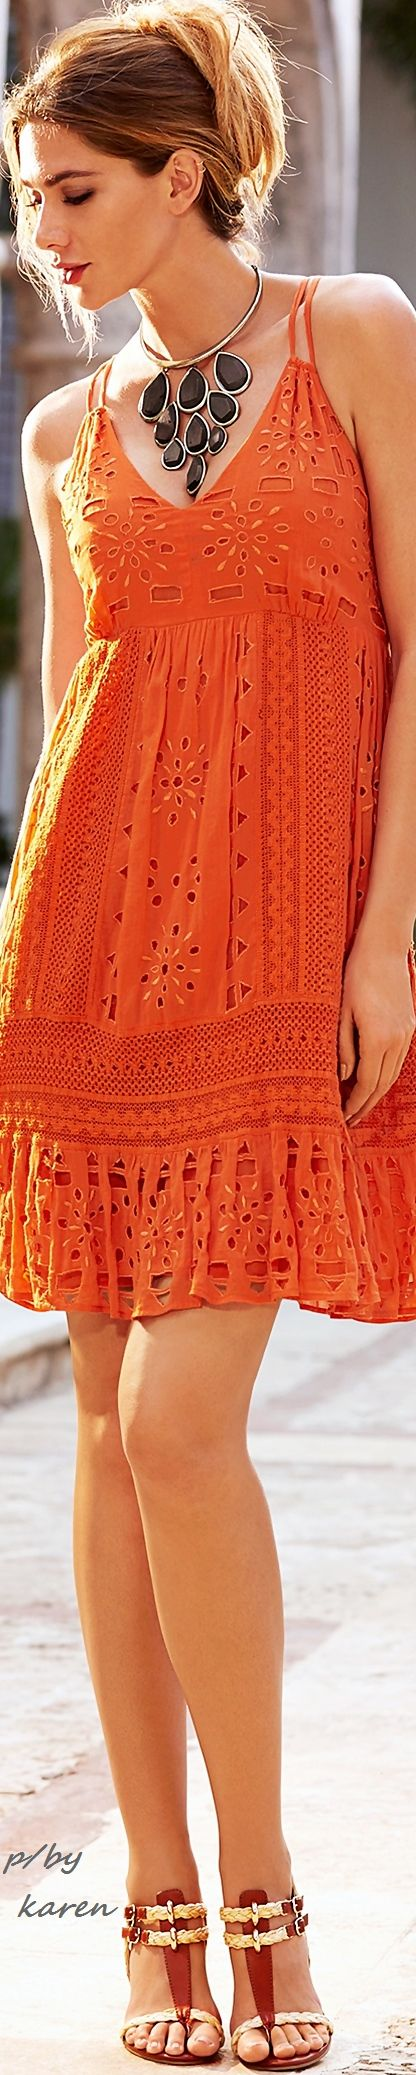 Boho Chic- love this, but need better straps and a different color See more at http://www.spikesgirls.com